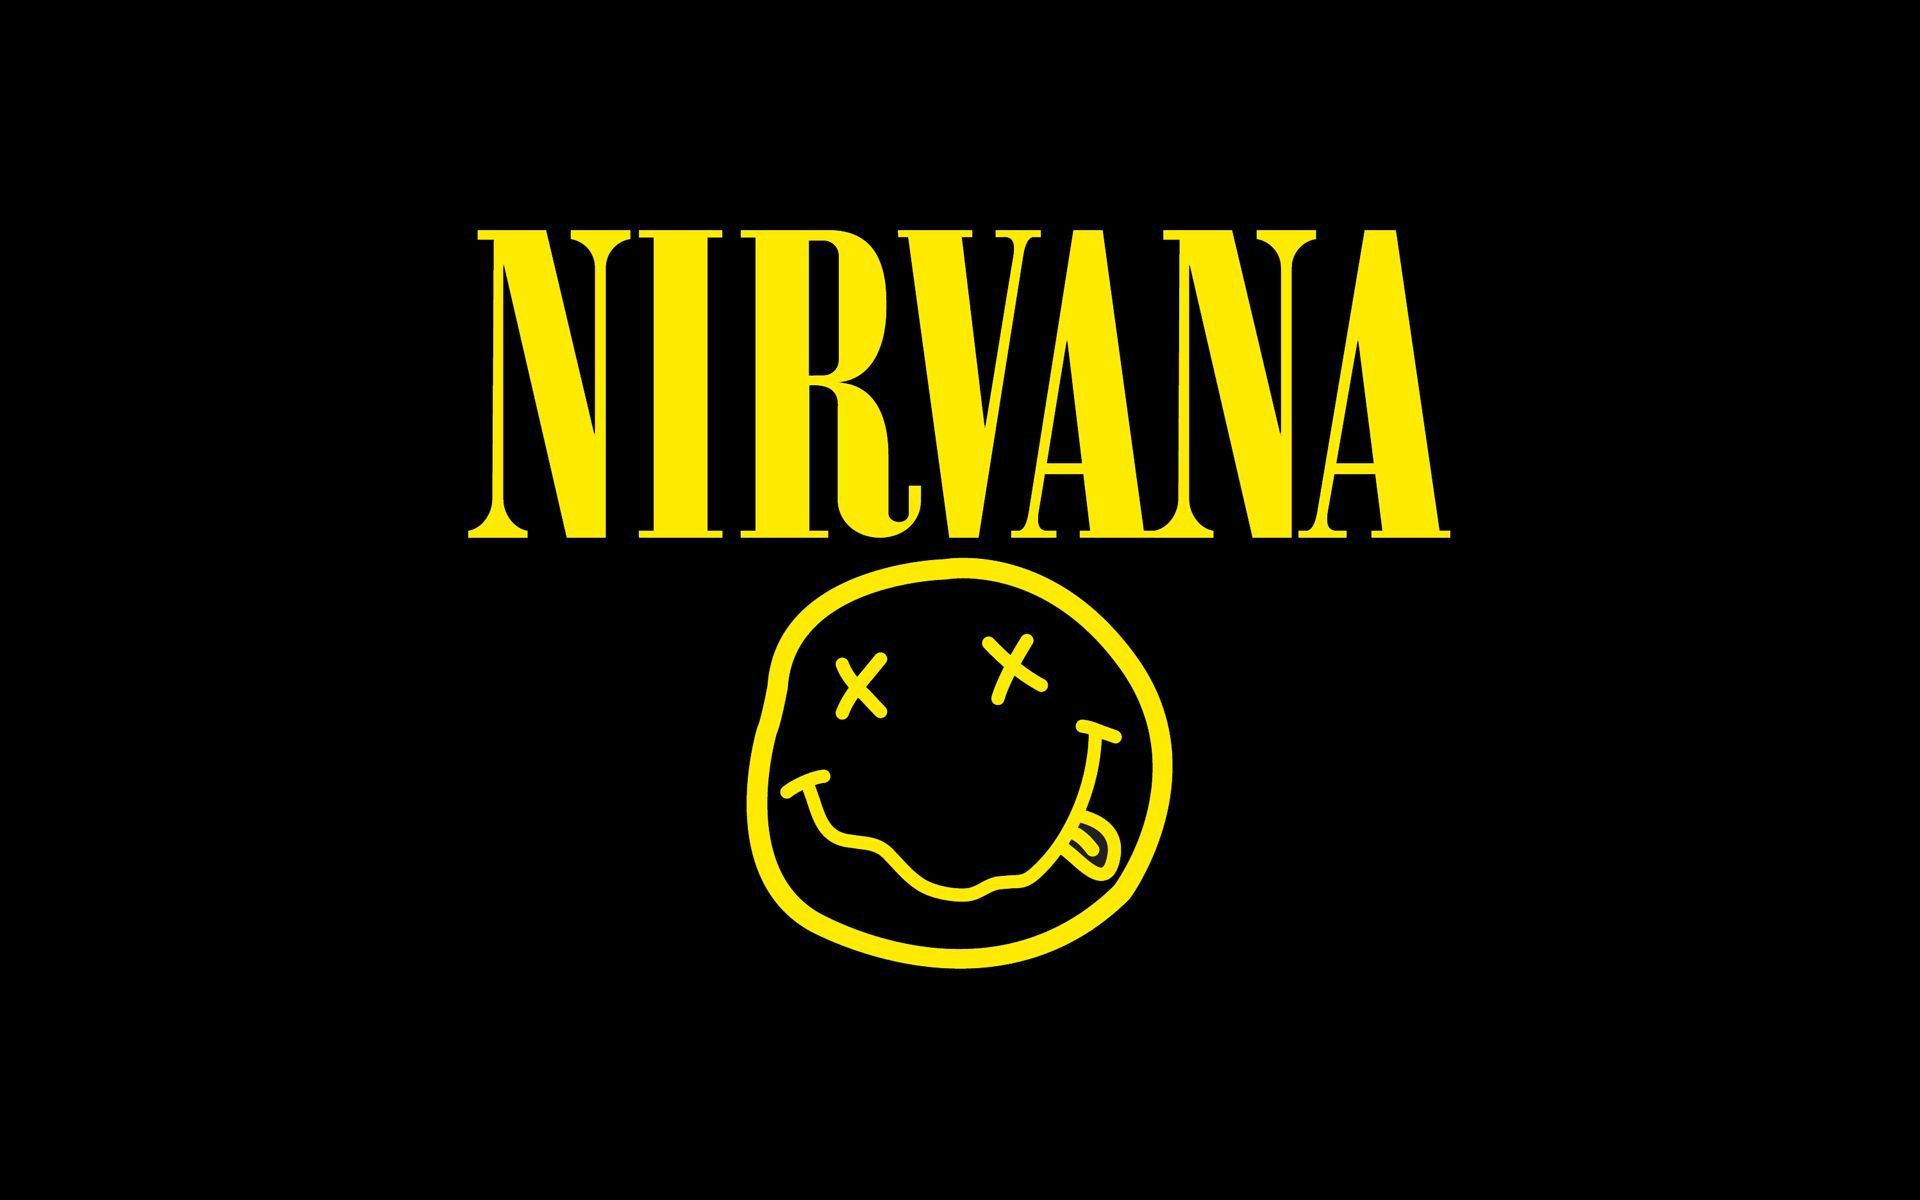 Nirvana Laptop Wallpapers Top Free Nirvana Laptop Backgrounds Wallpaperaccess